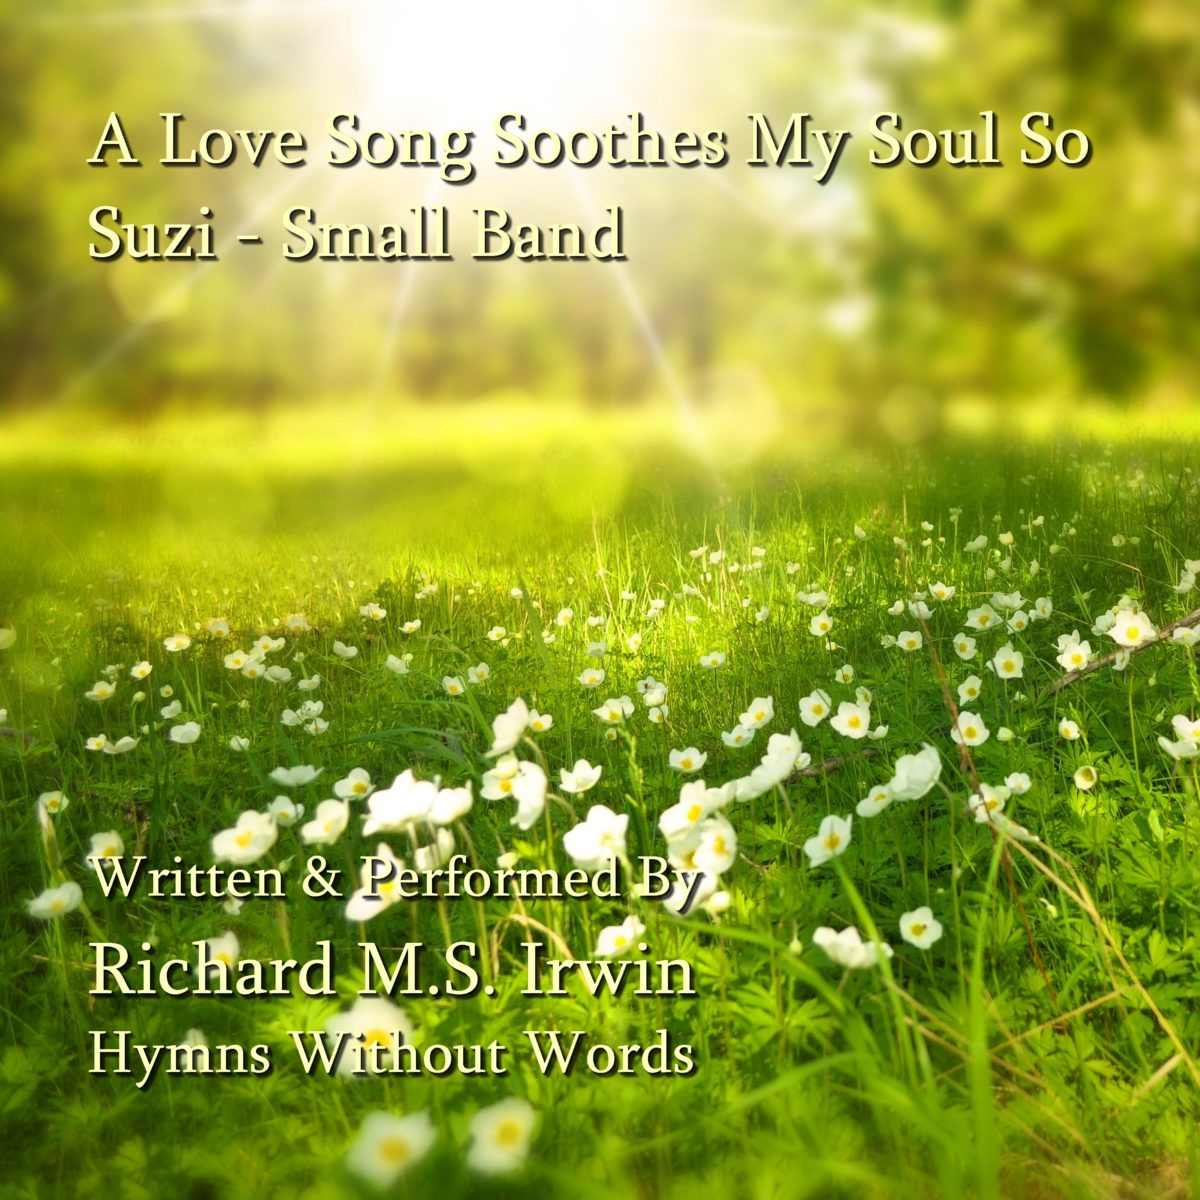 A Love Song Soothes My Soul So (Suzi, Piano Ensemble, 3 Verses)